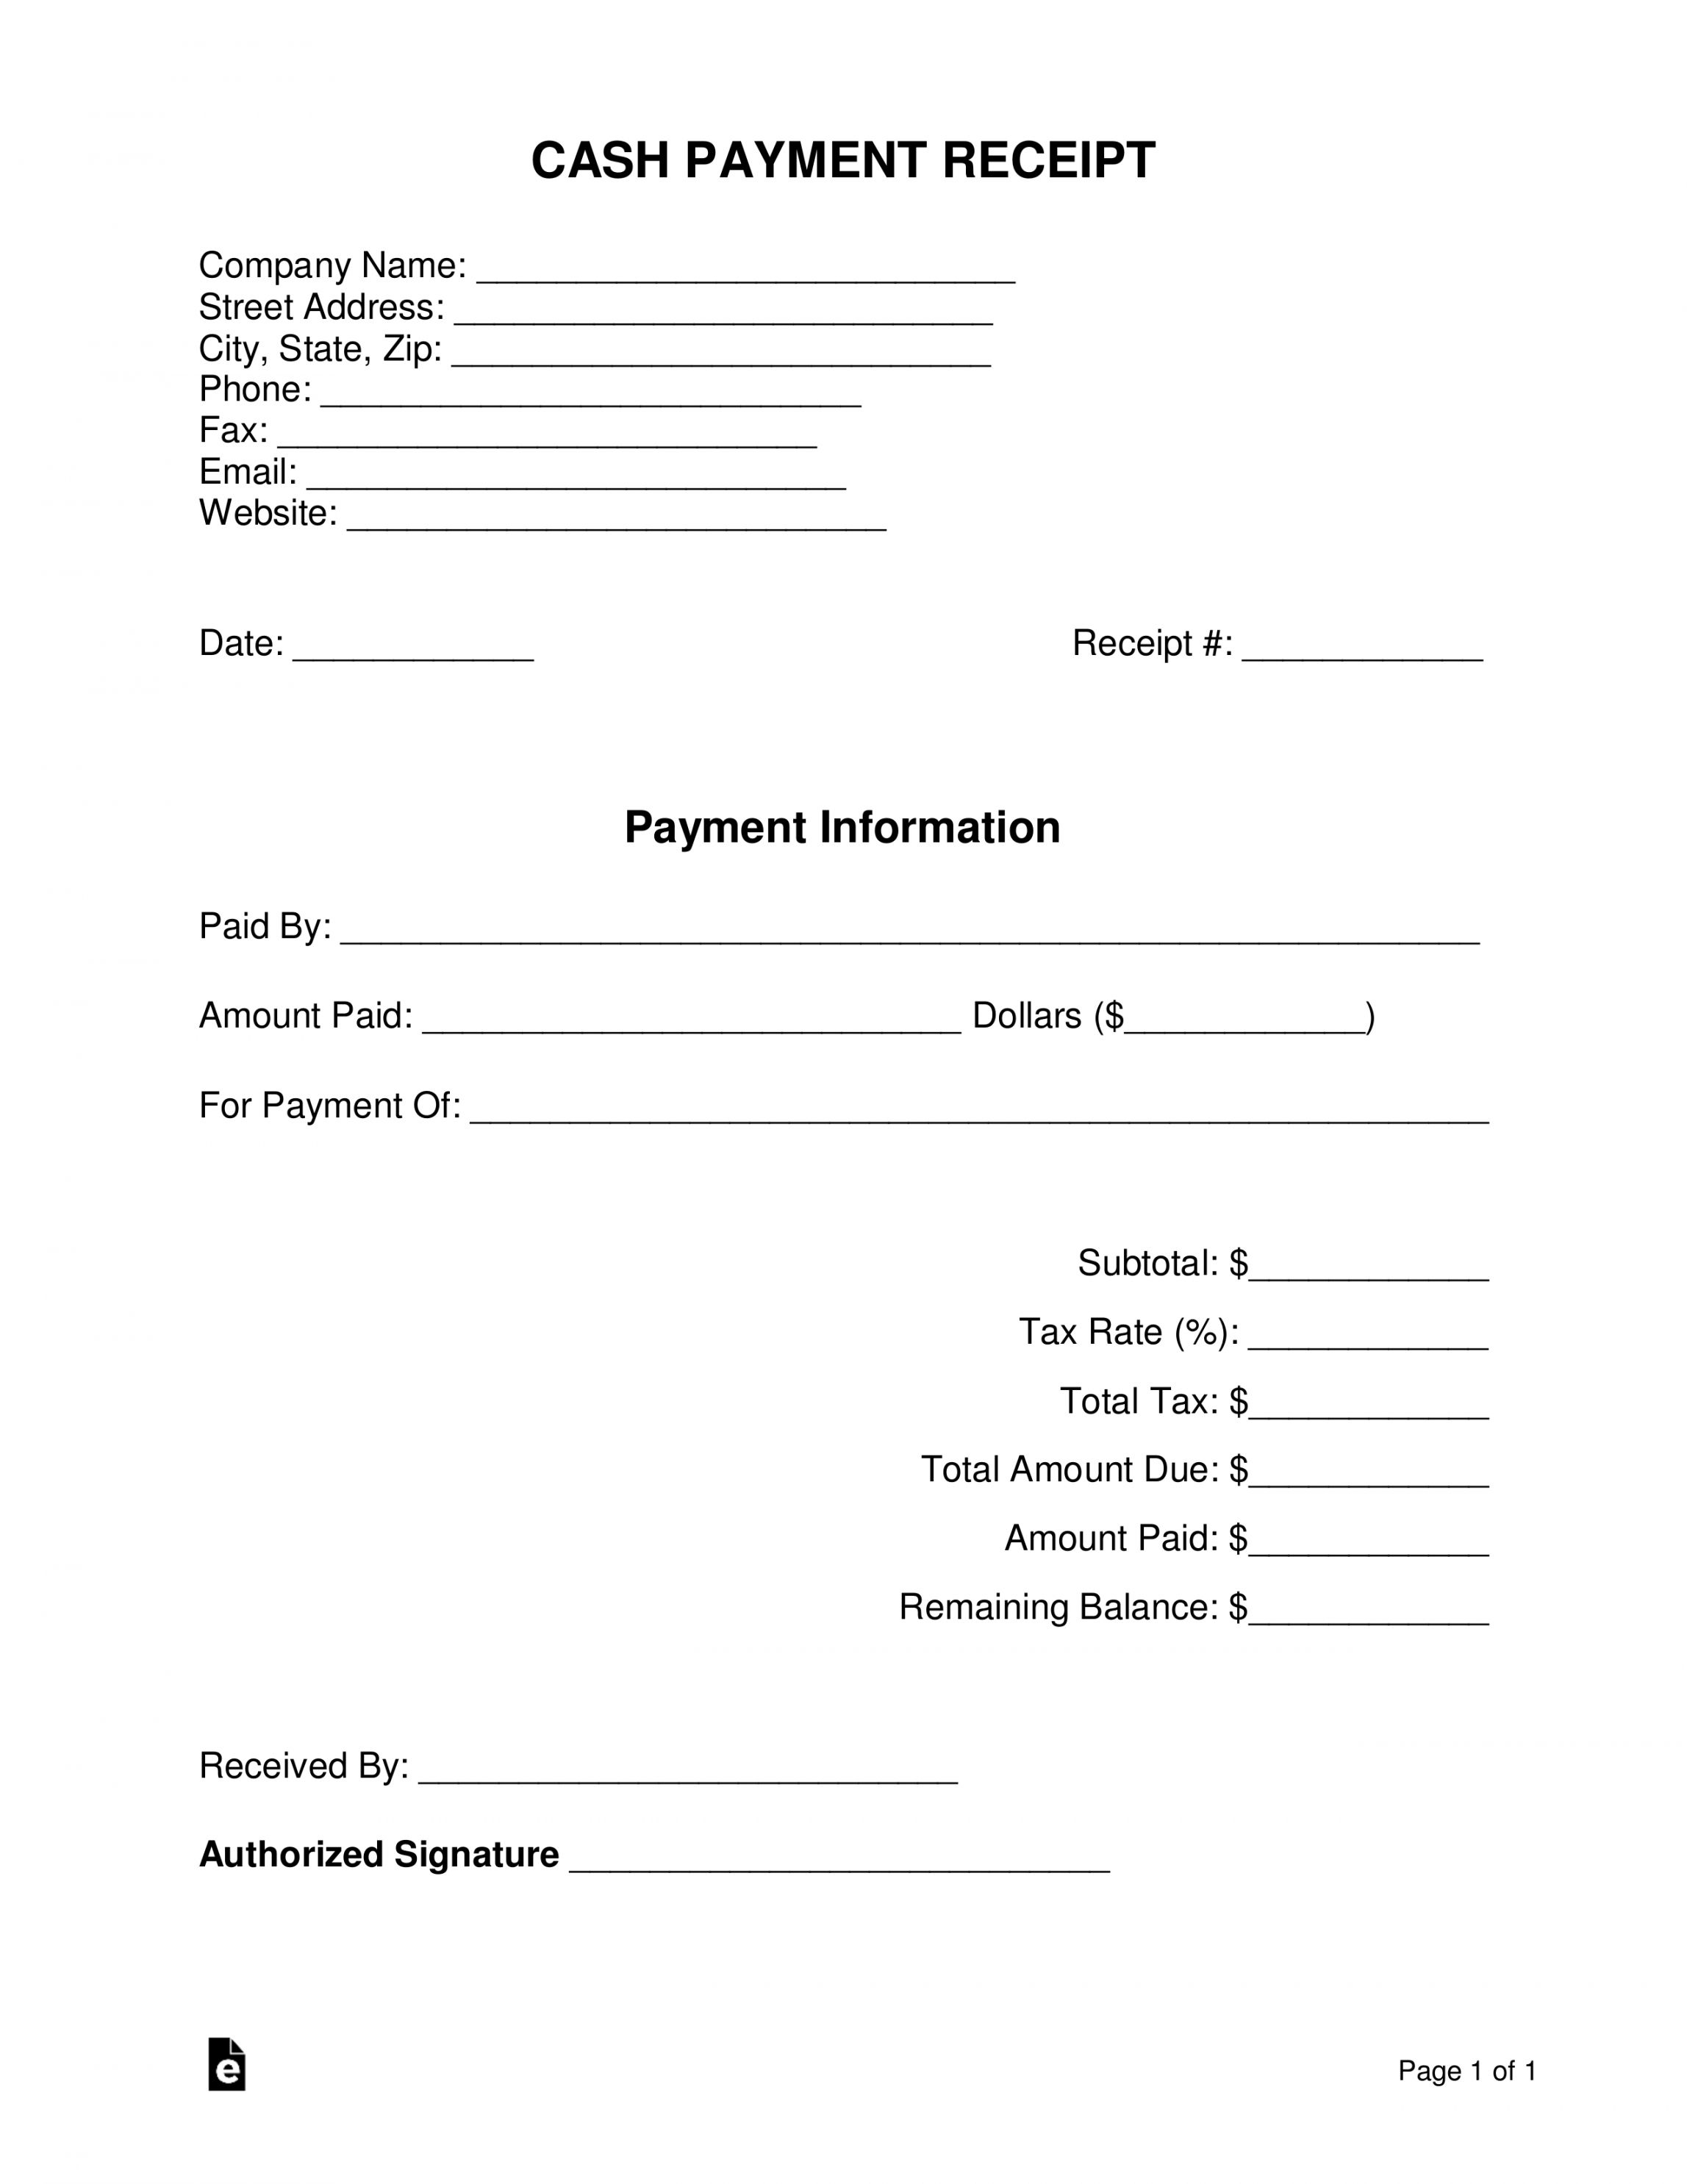 Browse Our Example Of Cash Transaction Receipt Template Receipt Template Invoice Template Spreadsheet Template